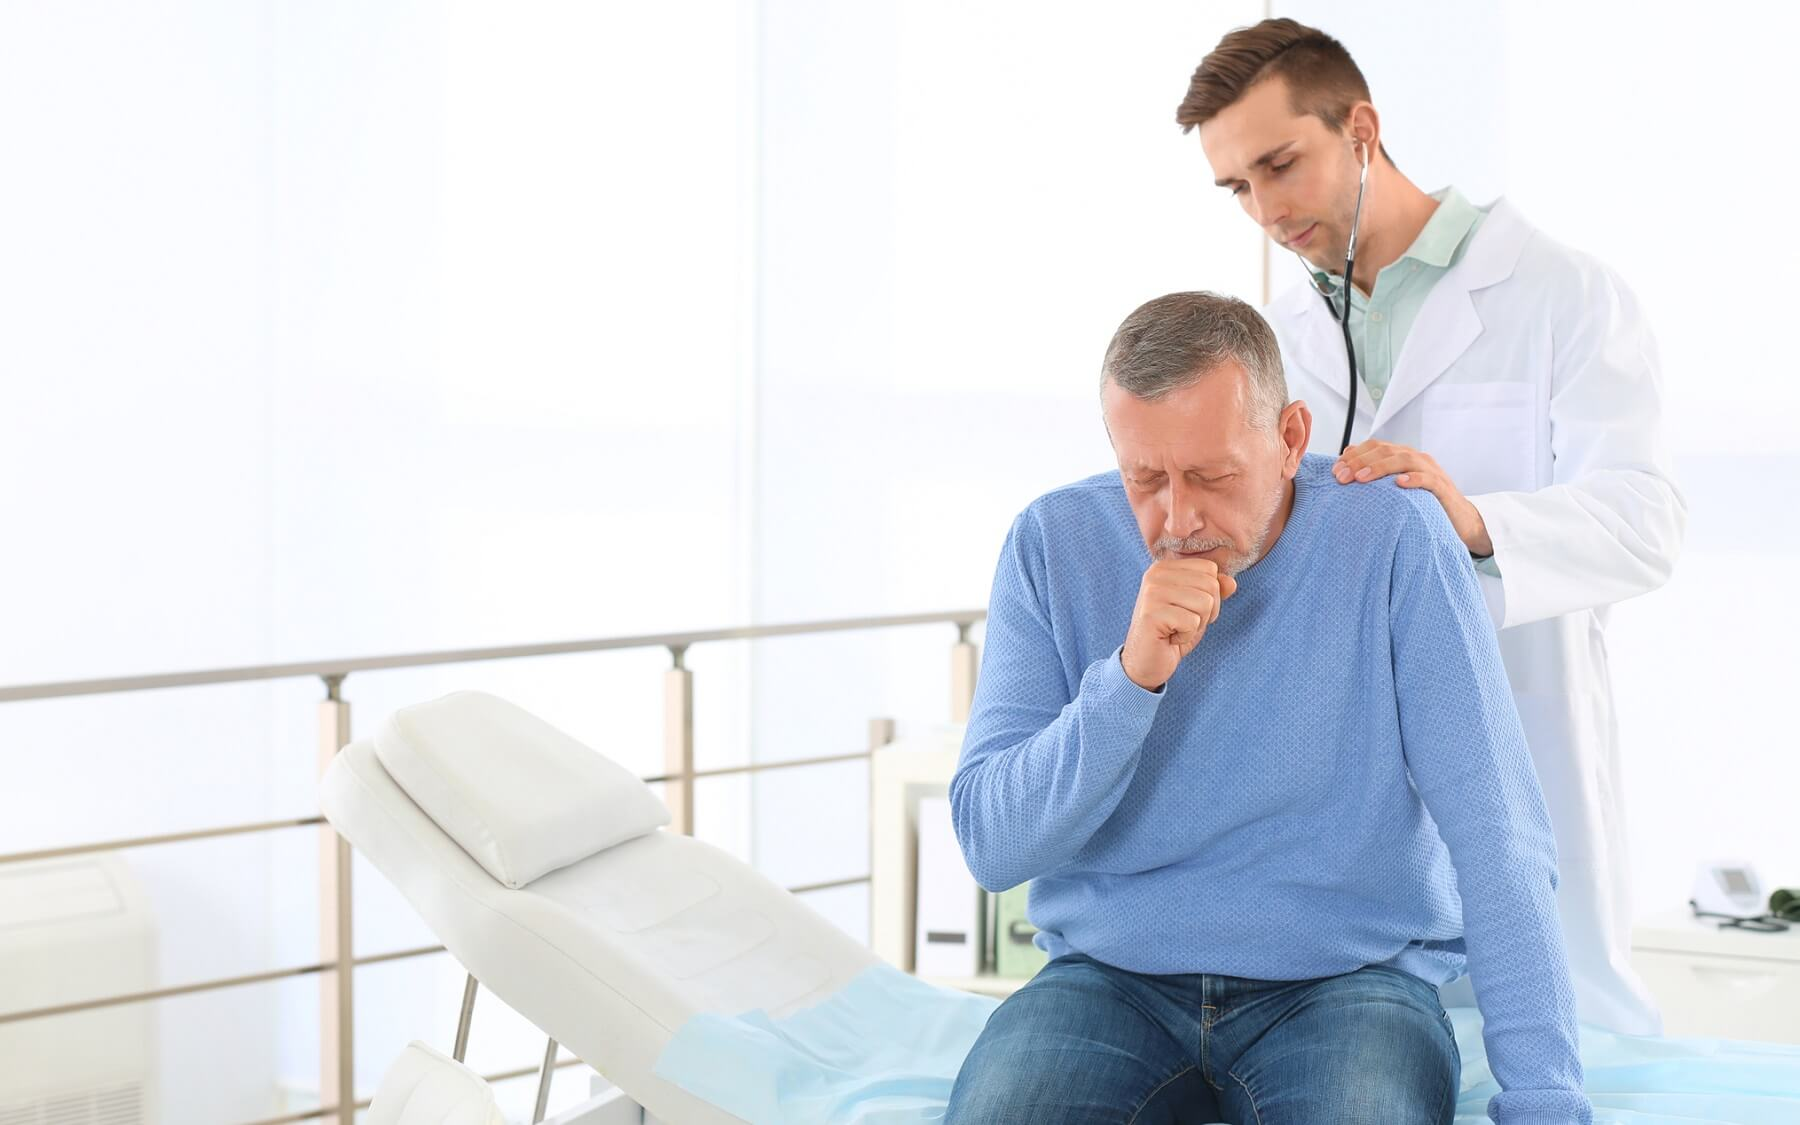 Patient getting a lung exam from a doctor